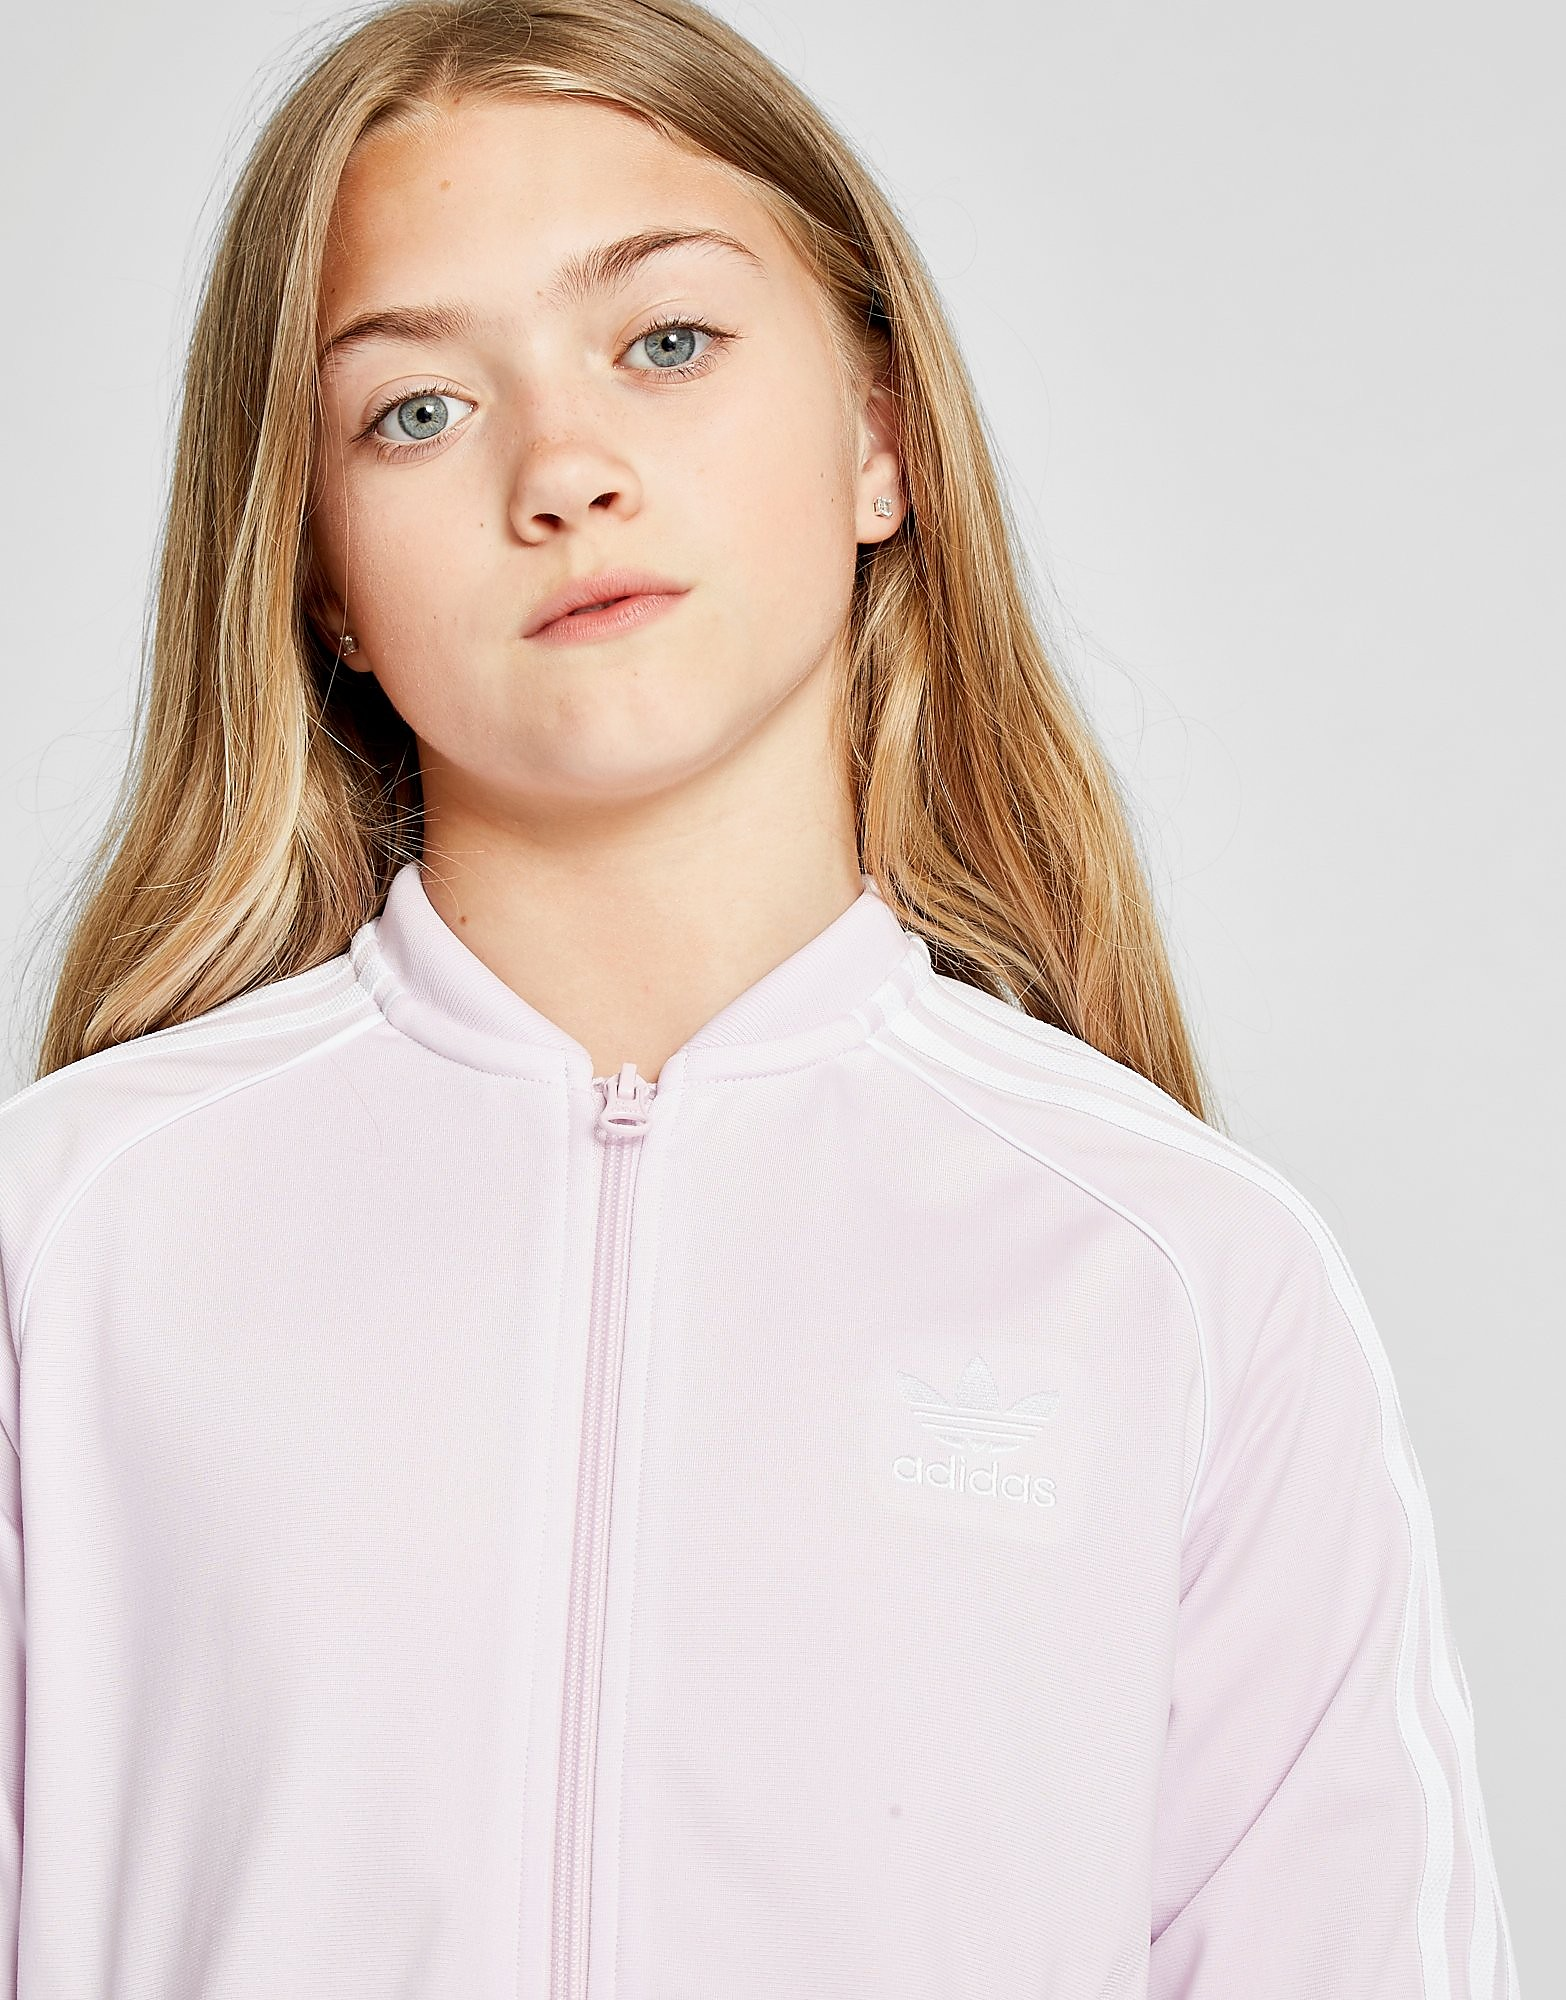 adidas Originals chaqueta de chándal Girls' Superstar júnior